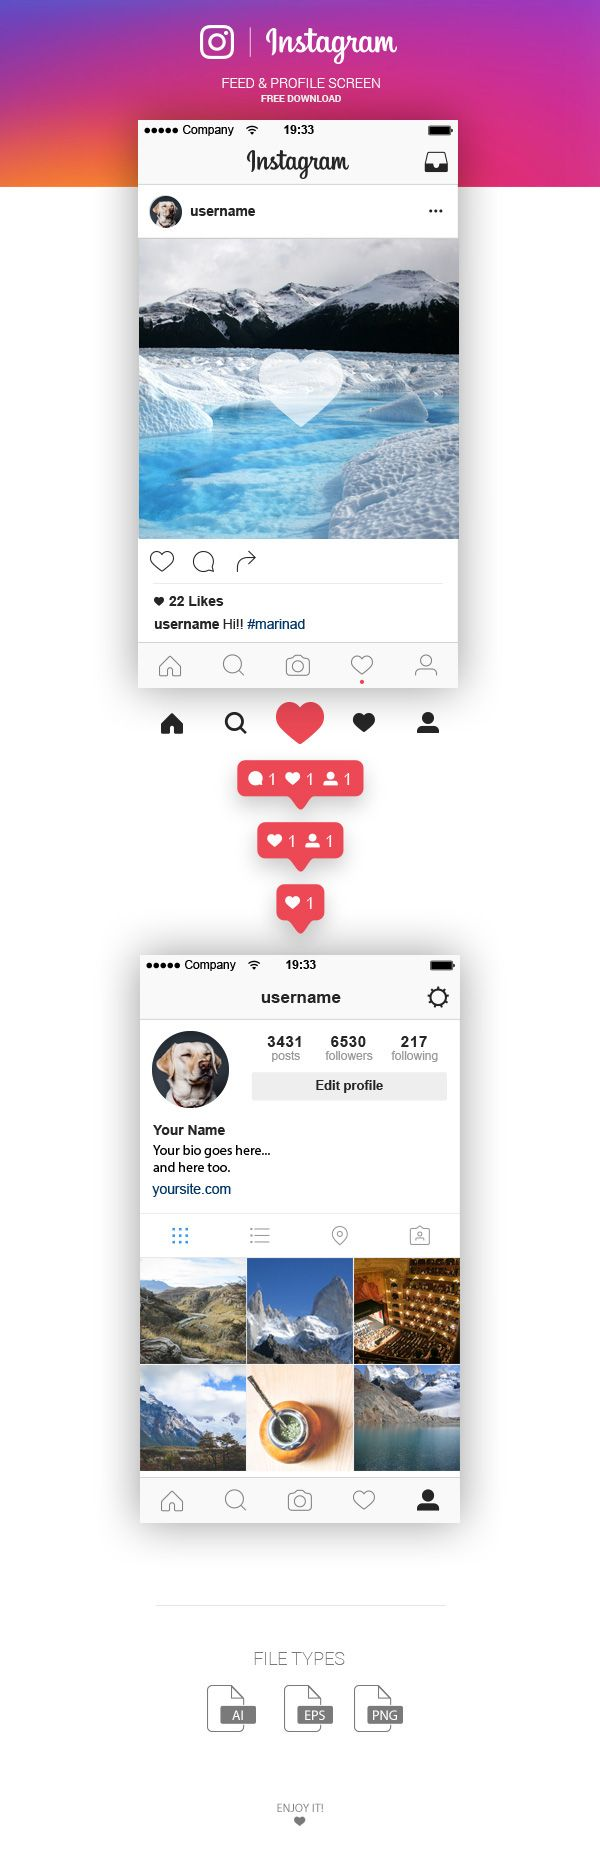 FREE | Instagram Feed & Profile Screen UI – 2016 on Behance